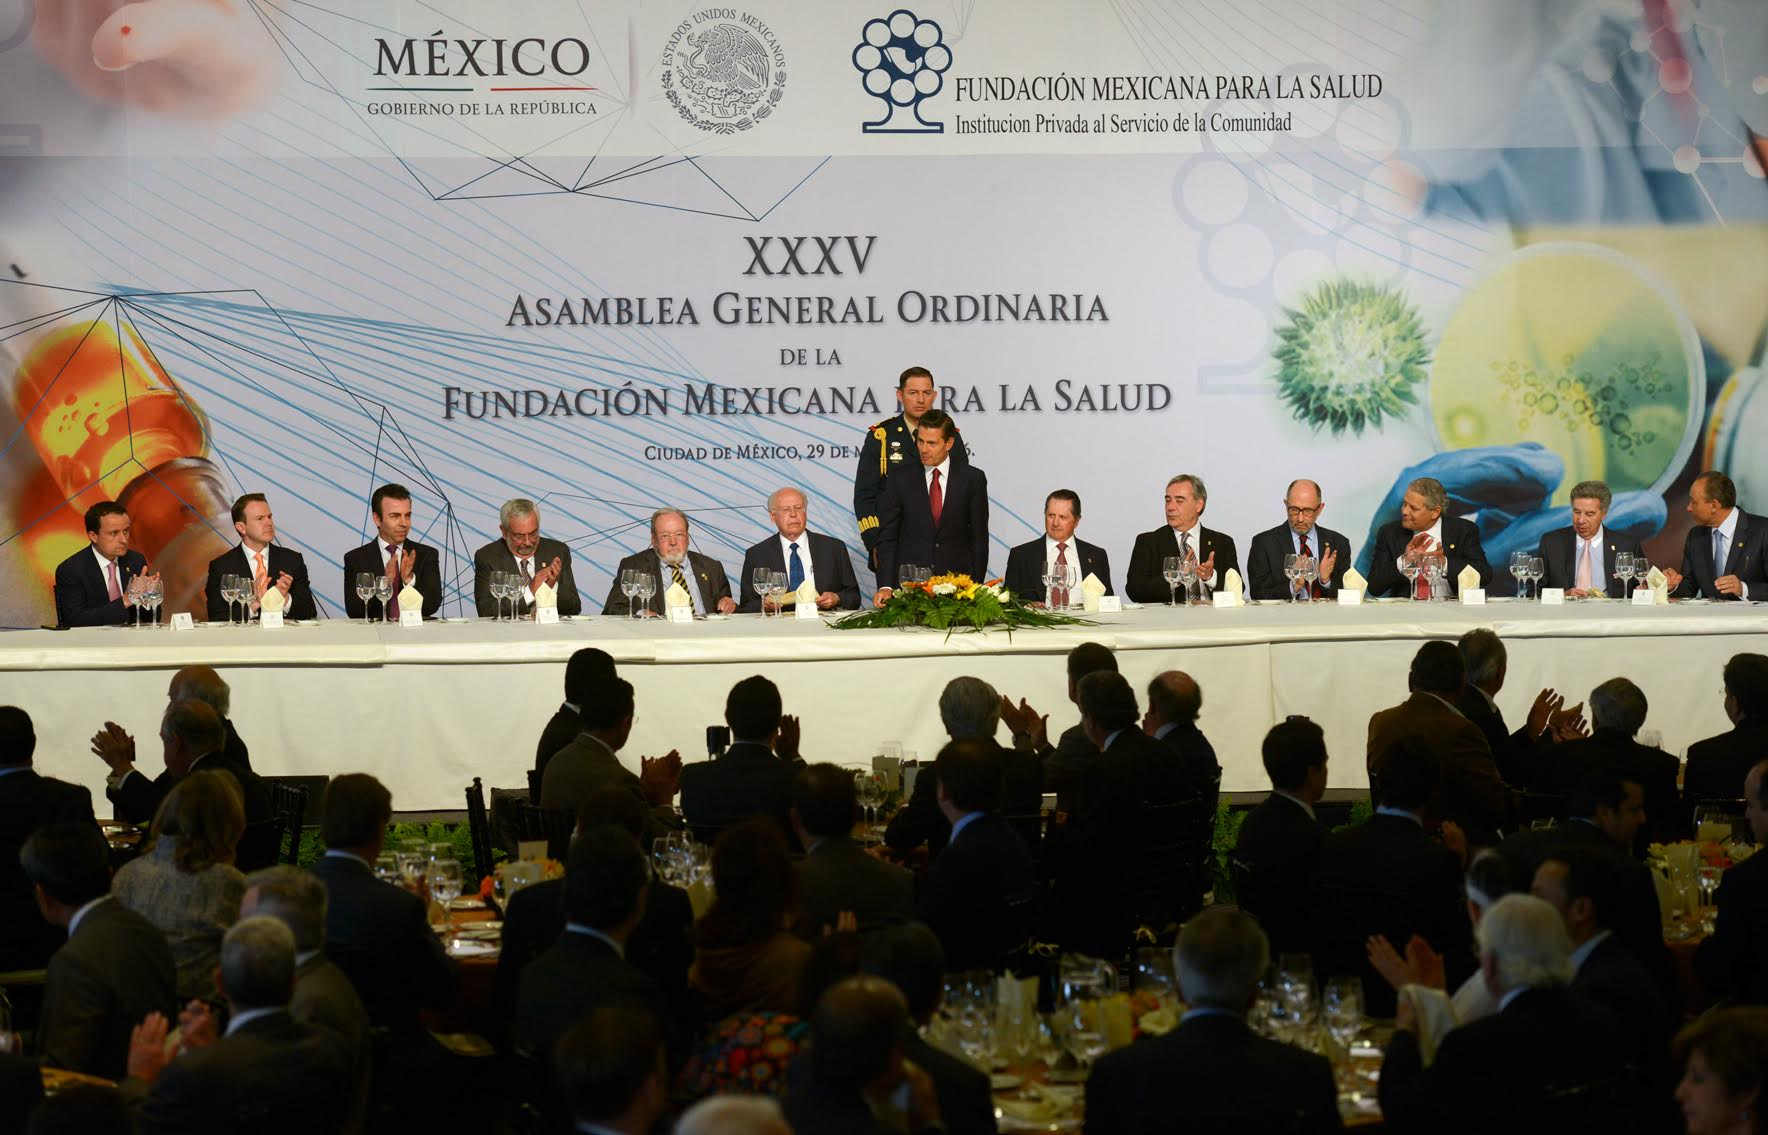 35th Ordinary General Assembly of the Mexican Health Foundation